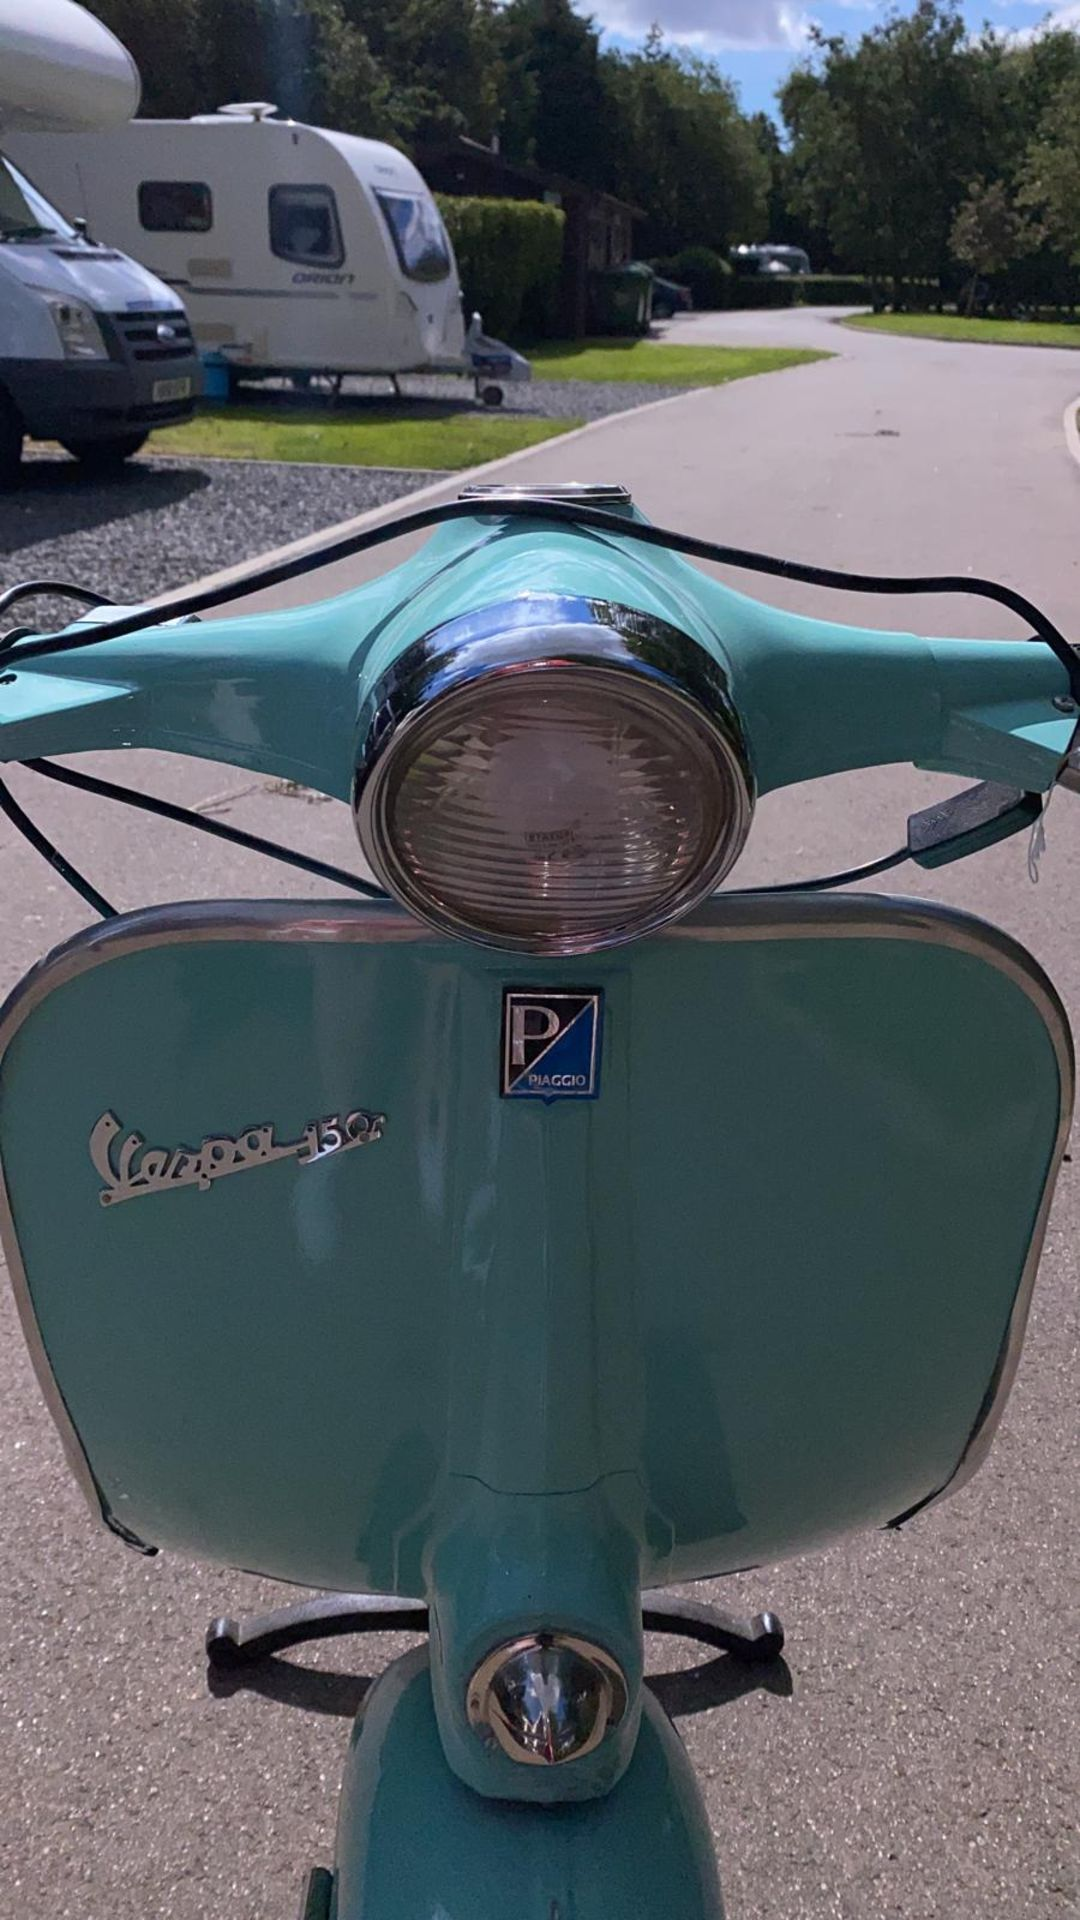 PIAGGIO VESPA 150 FRONT LIGHT ON A 3 PIN PLUG THROUGH THE HEADLIGHT *NO VAT* - Image 5 of 8